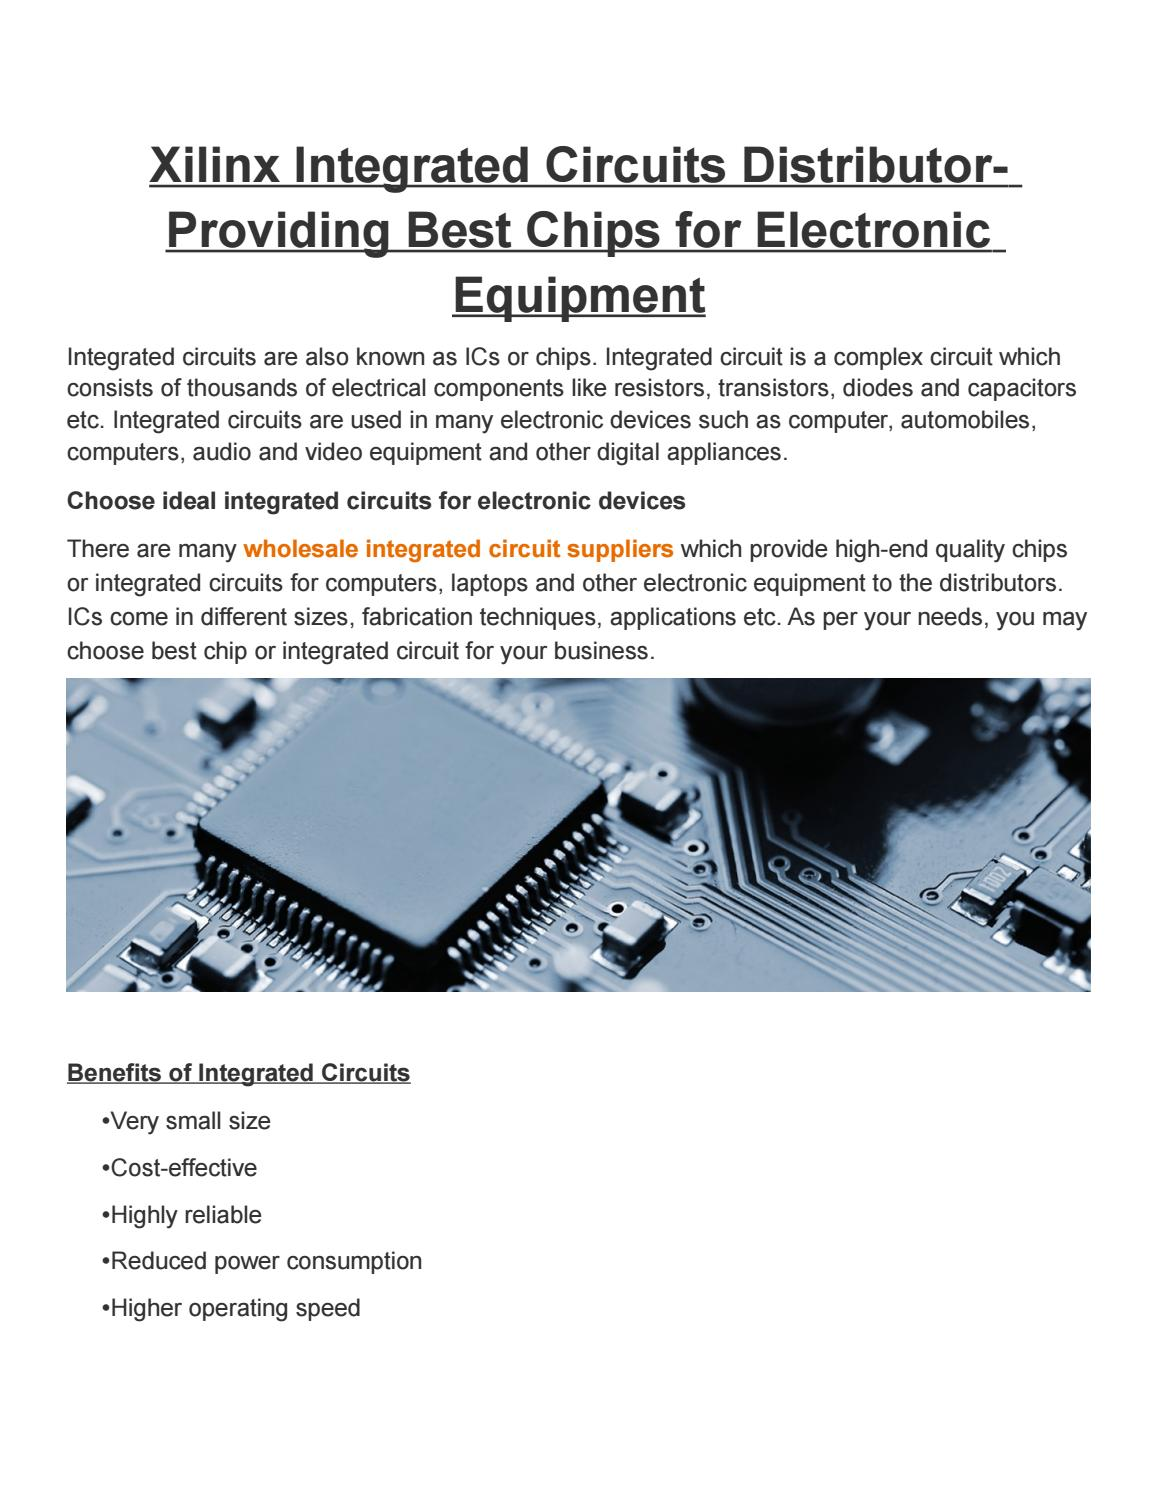 Xilinx Integrated Circuits Distributor Providing Best Chips For Icintegrated Circuit Ic Chip Component Electronic Equipment By Express Technology Issuu